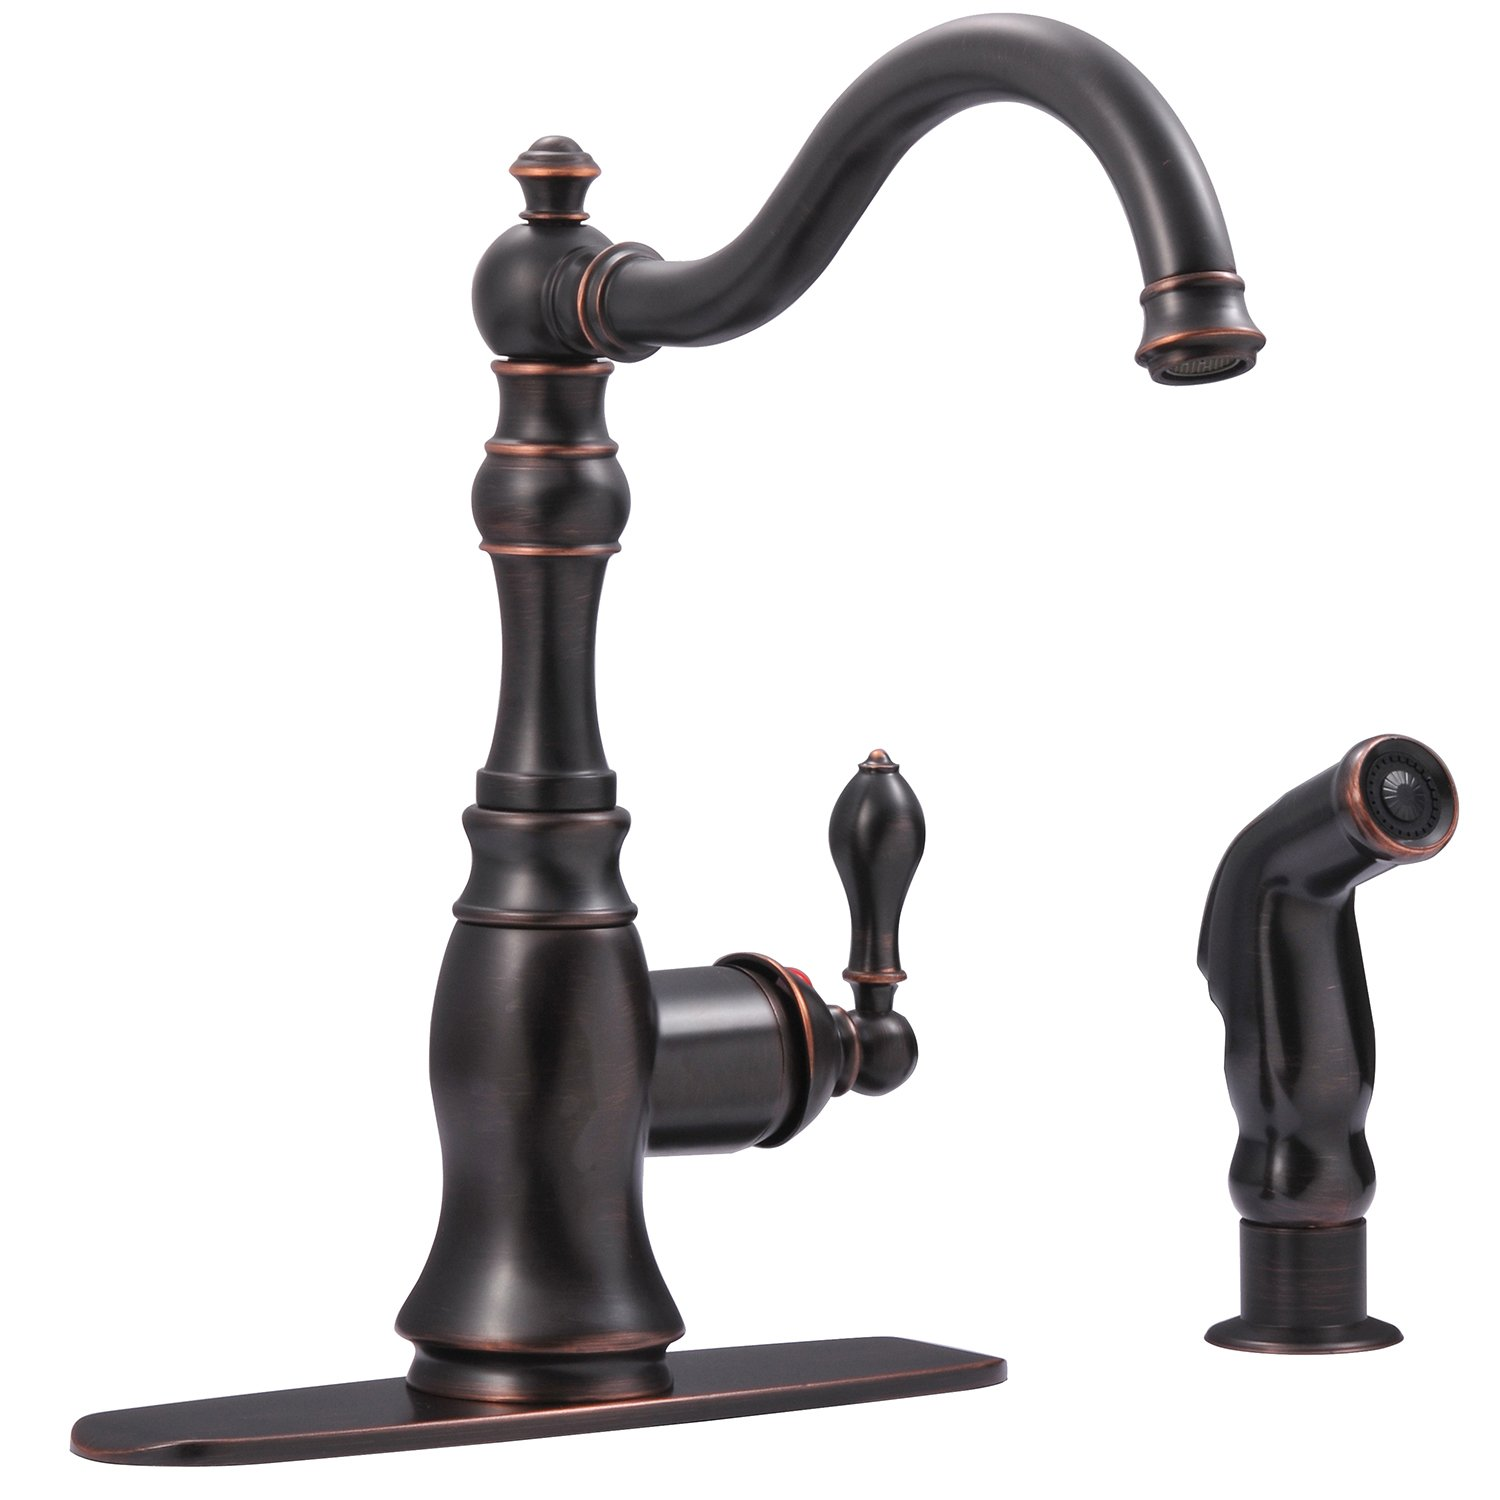 ultra faucets uf11245 signature collection single handle kitchen ultra faucets uf11245 signature collection single handle kitchen faucet with side spray oil rubbed bronze touch on kitchen sink faucets amazon com